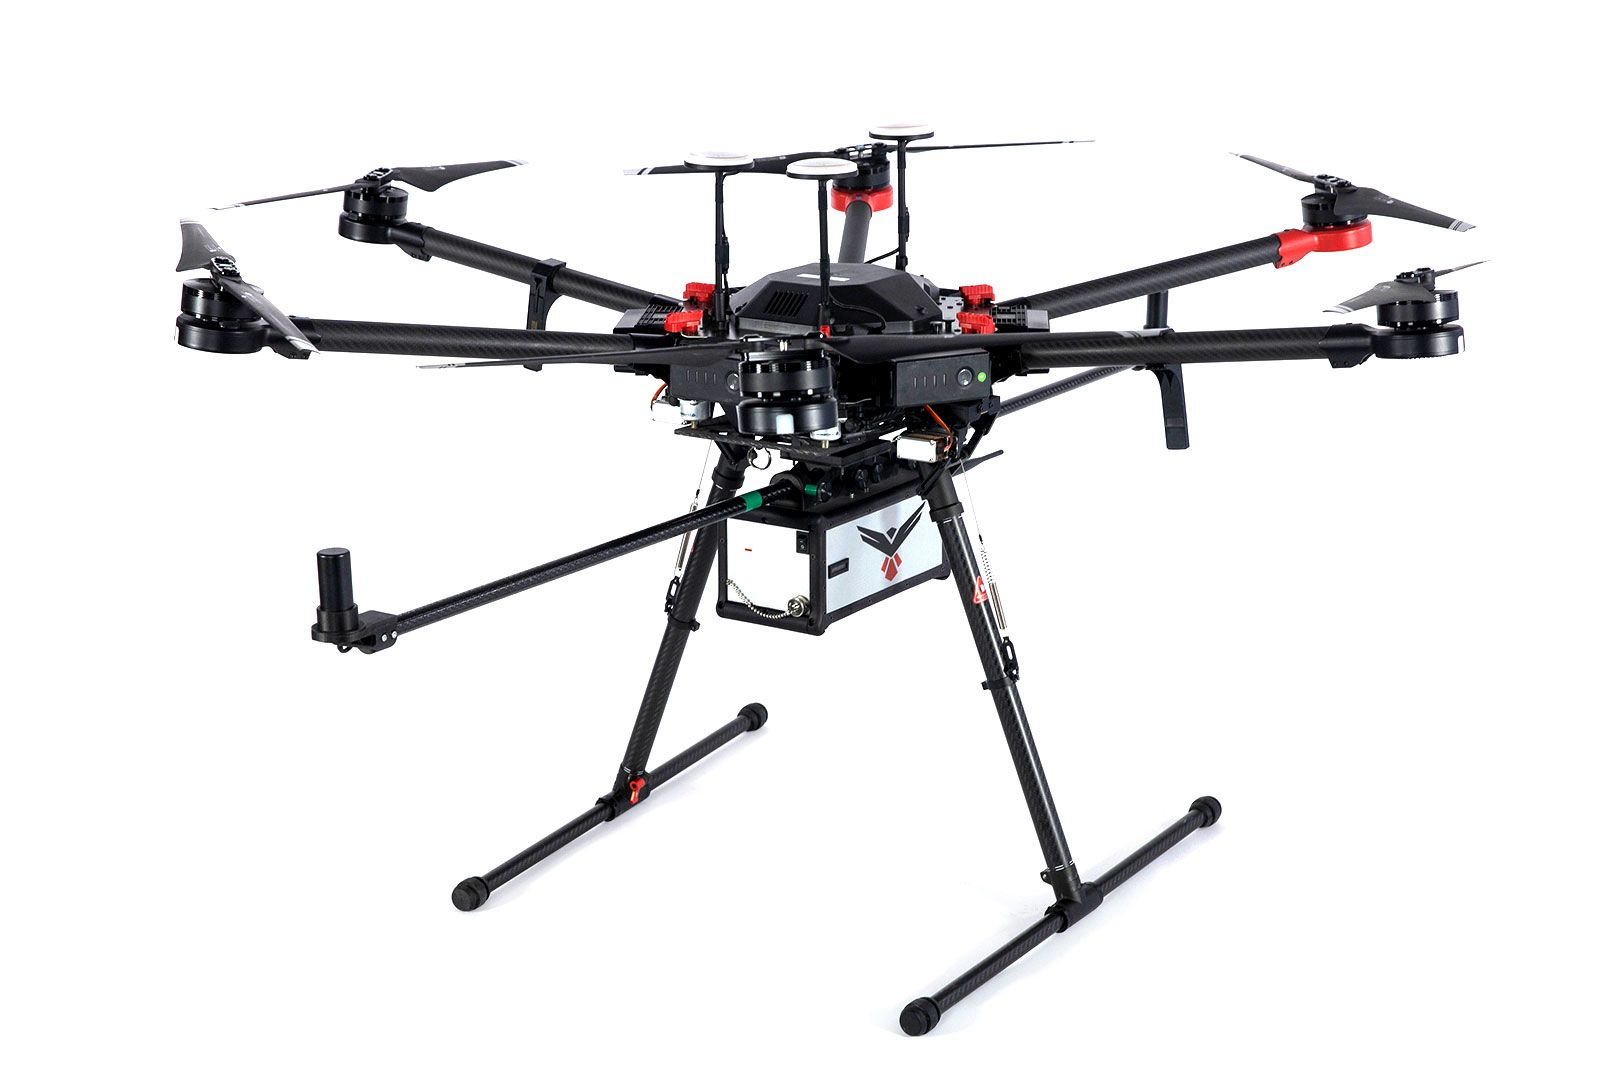 RedTail LiDAR Systems Unveils Innovative 3D Mapping Solution at Commercial UAV EXPO